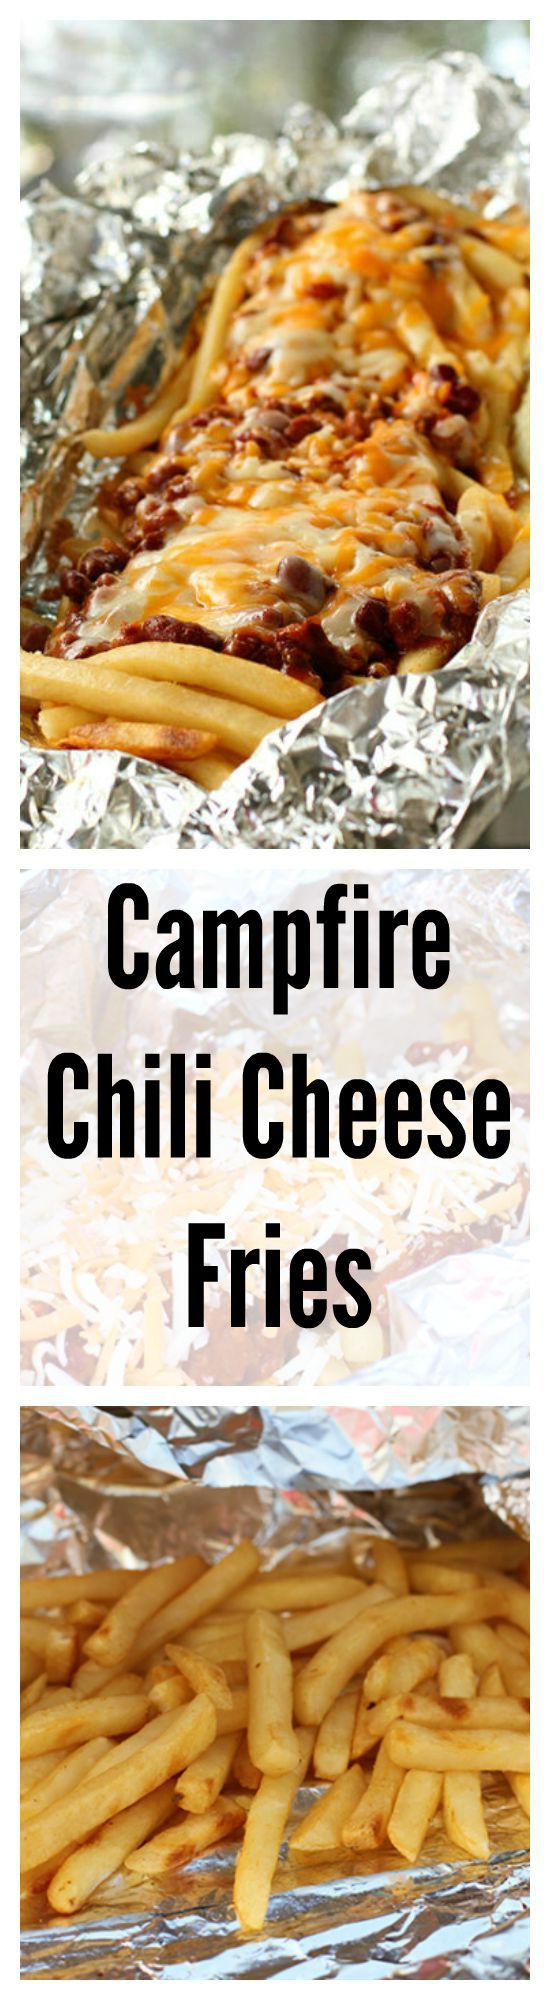 The fastest way to make a camping trip even better is by serving up these chili cheese fries, made over the campfire.: